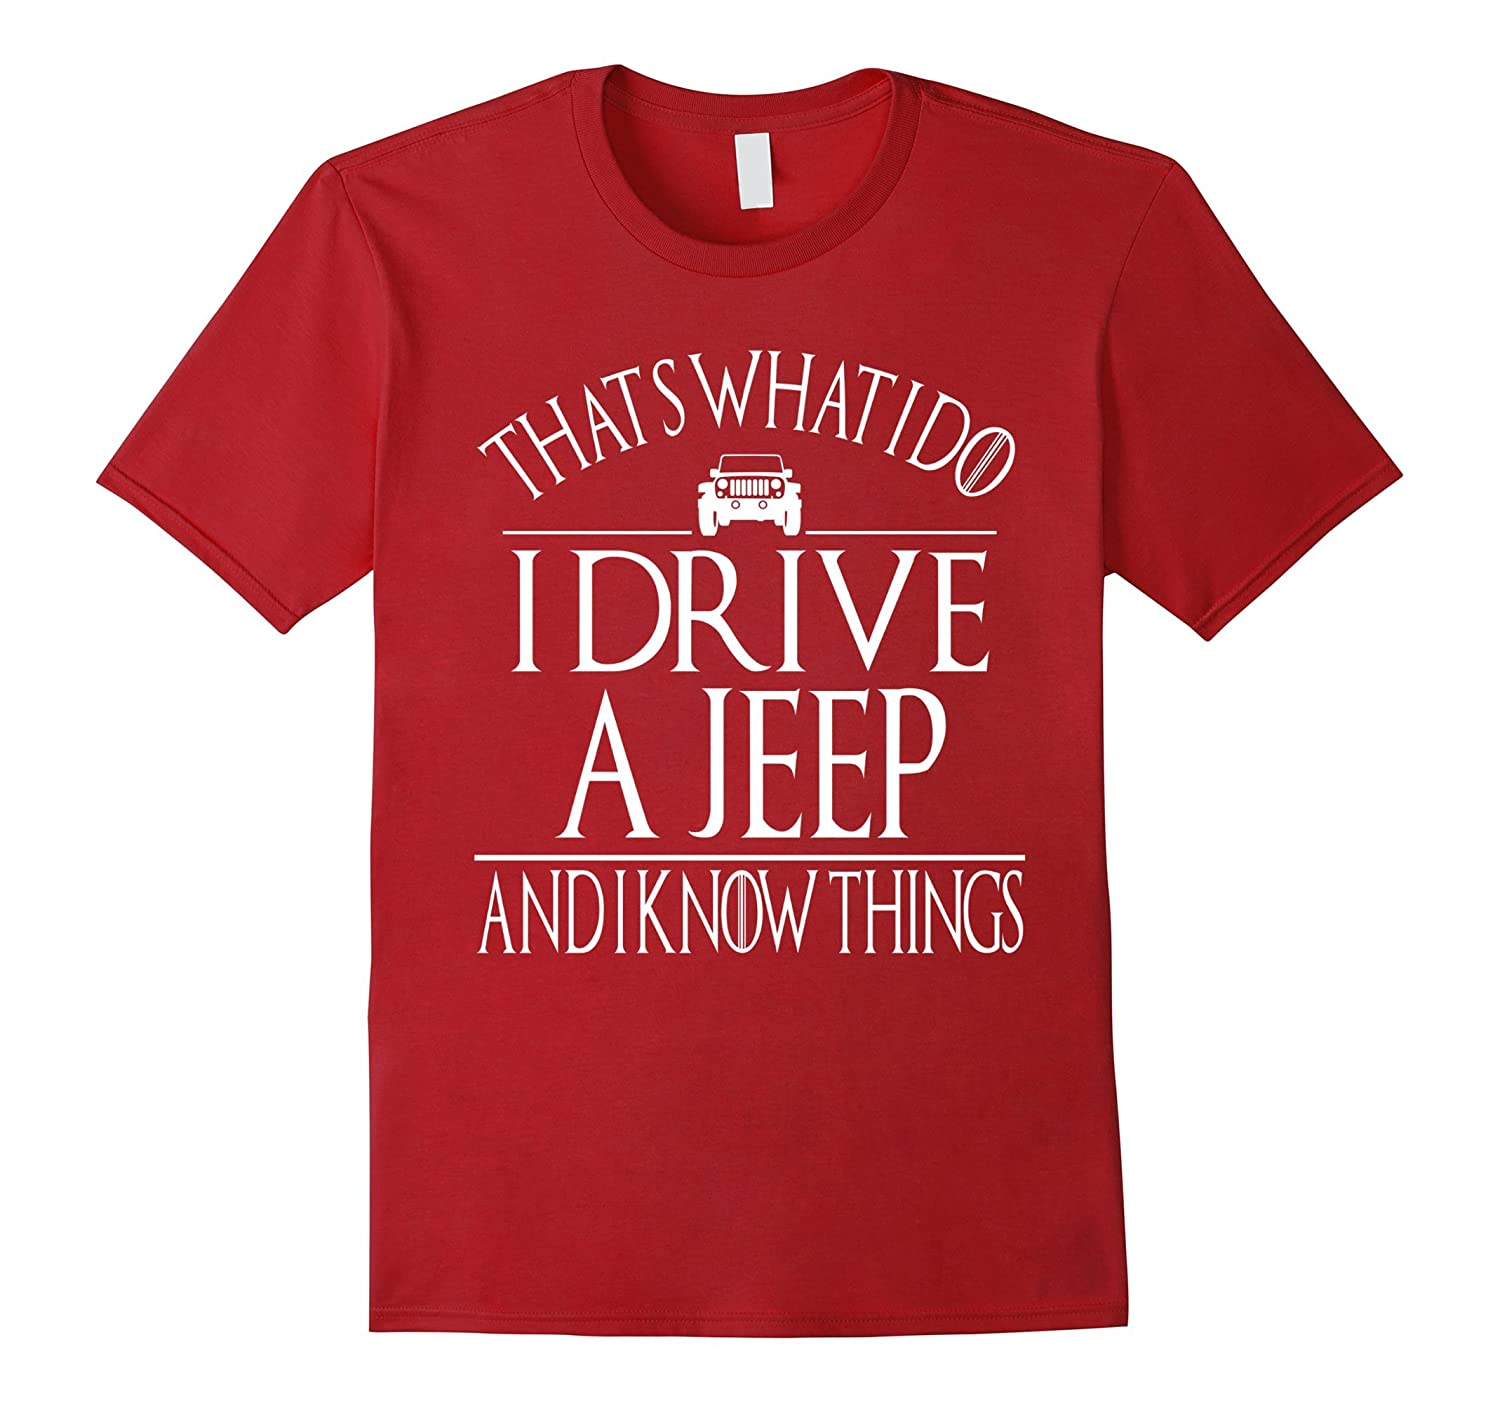 THAT'S WHAT I DO I DRIVE A JEEP AND I KNOW THINGS TSHIRT-Protee